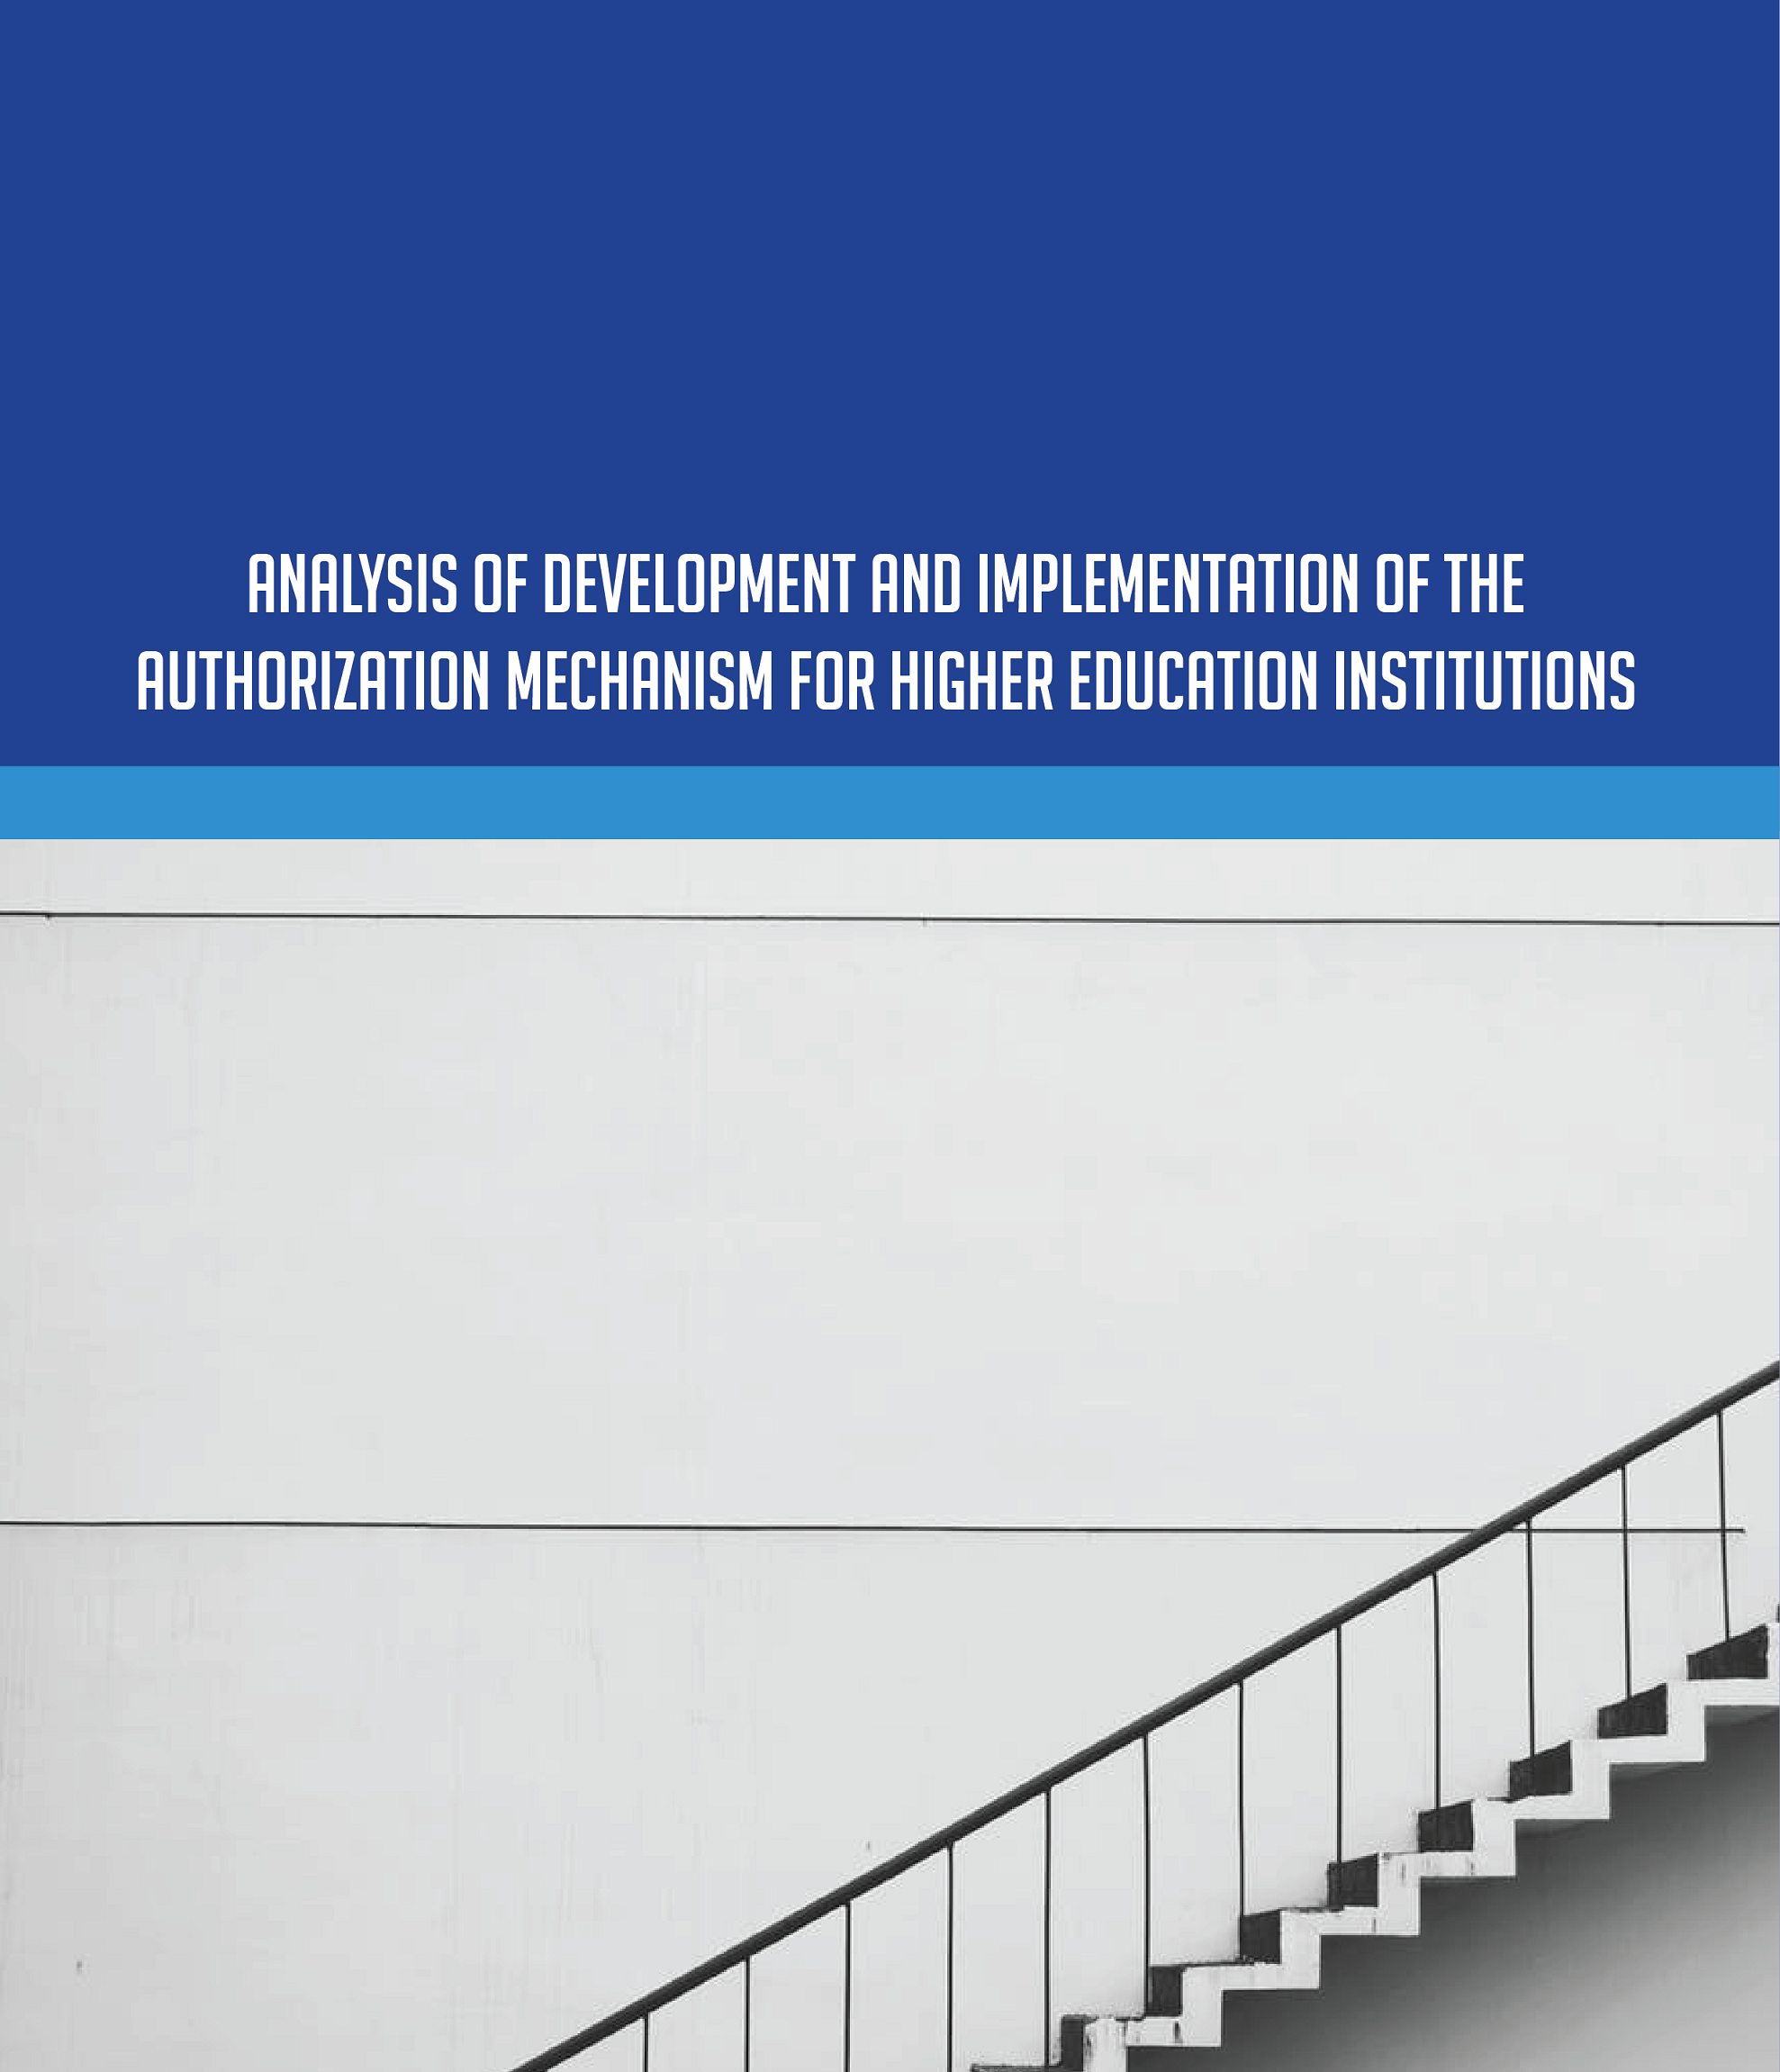 Analysis of Development and Implementation of the Authorization Mechanism for Higher Education Institutions